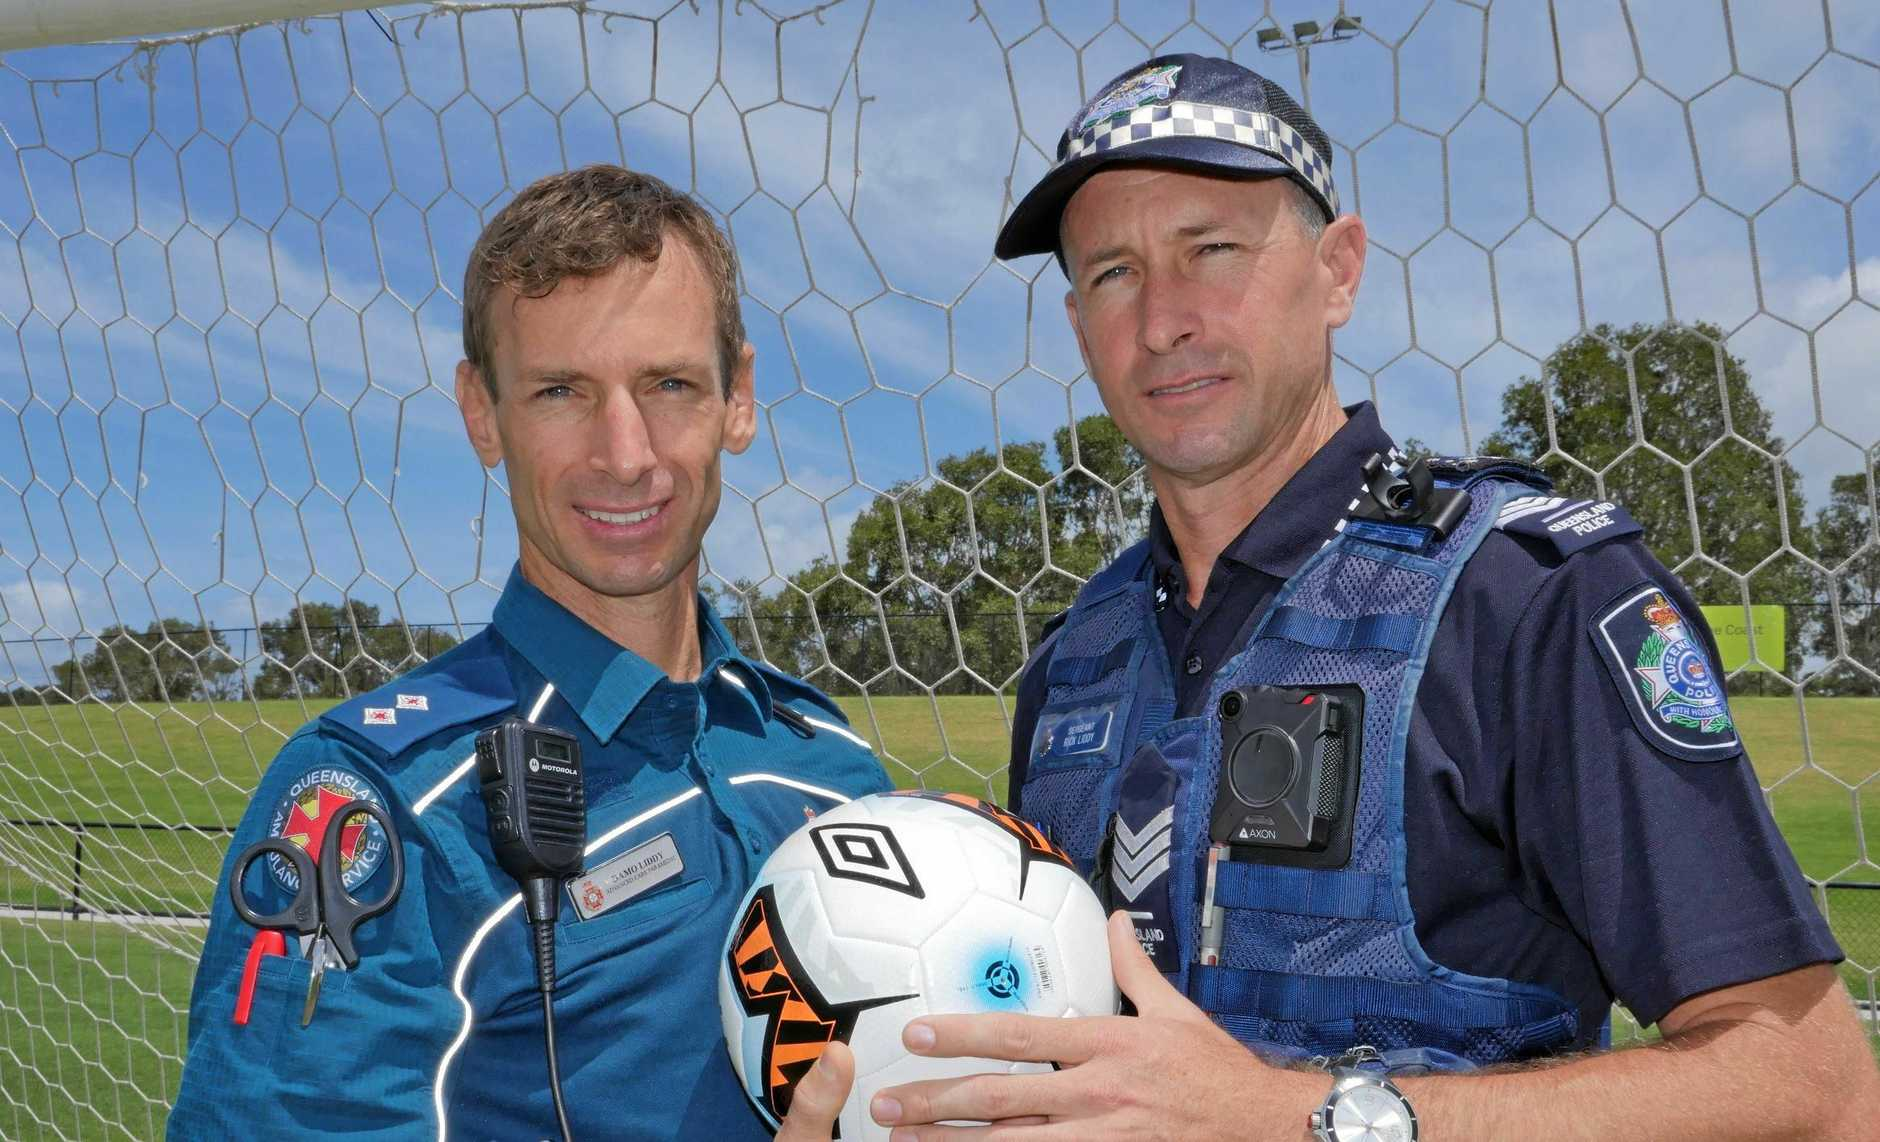 HEAD TO HEAD: Brothers, Damo (QAS paramedic) and Rick (QPS sergeant) will face off against each other in a charity soccer match to raise funds for a family in need.